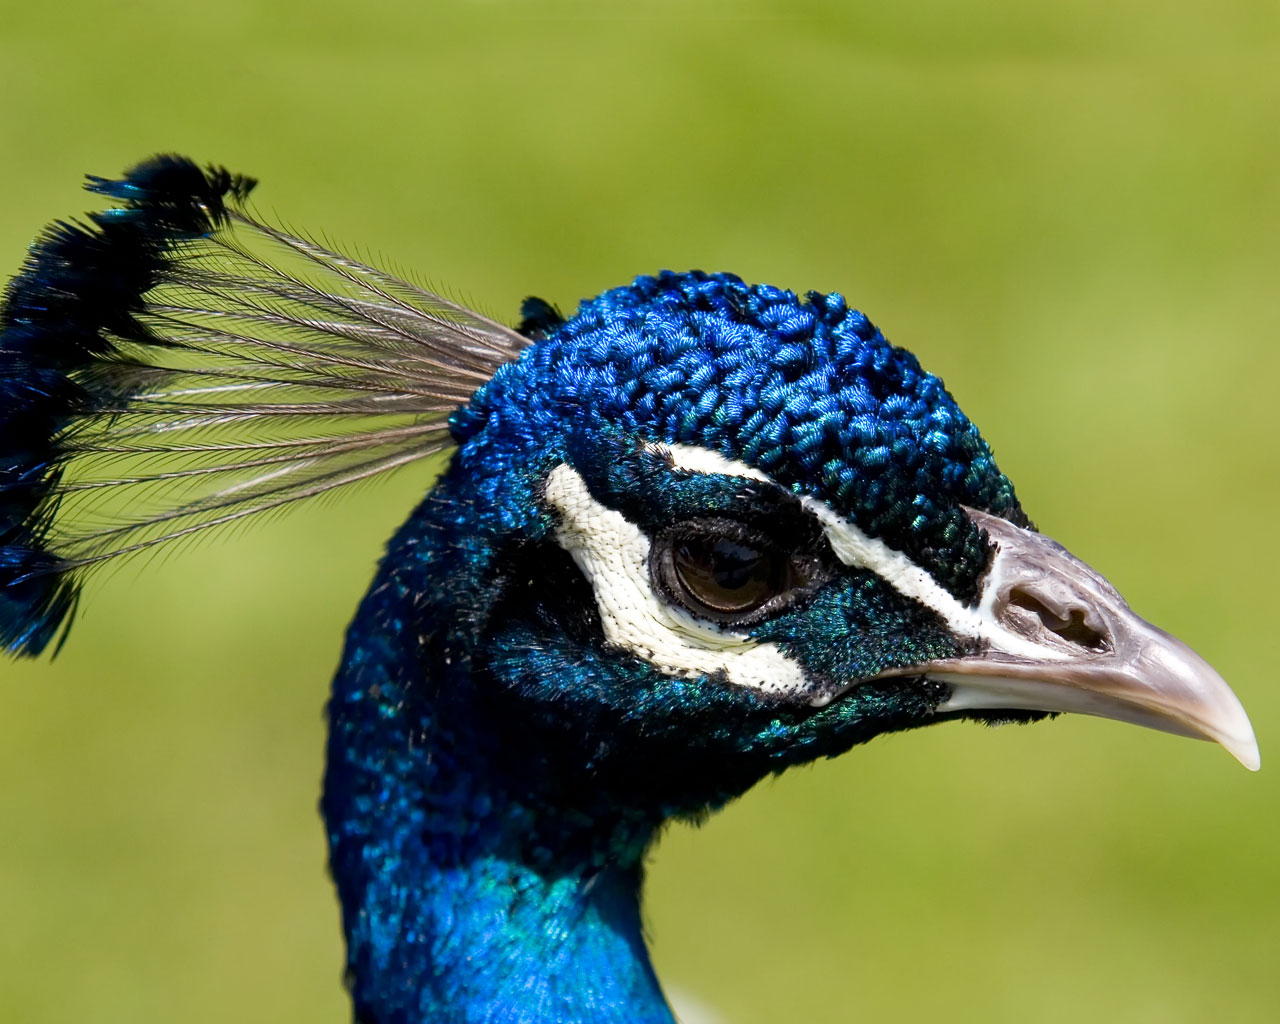 Desktop wallpaper of a blue peacocks head and crest at Newstead abbey 1280x1024